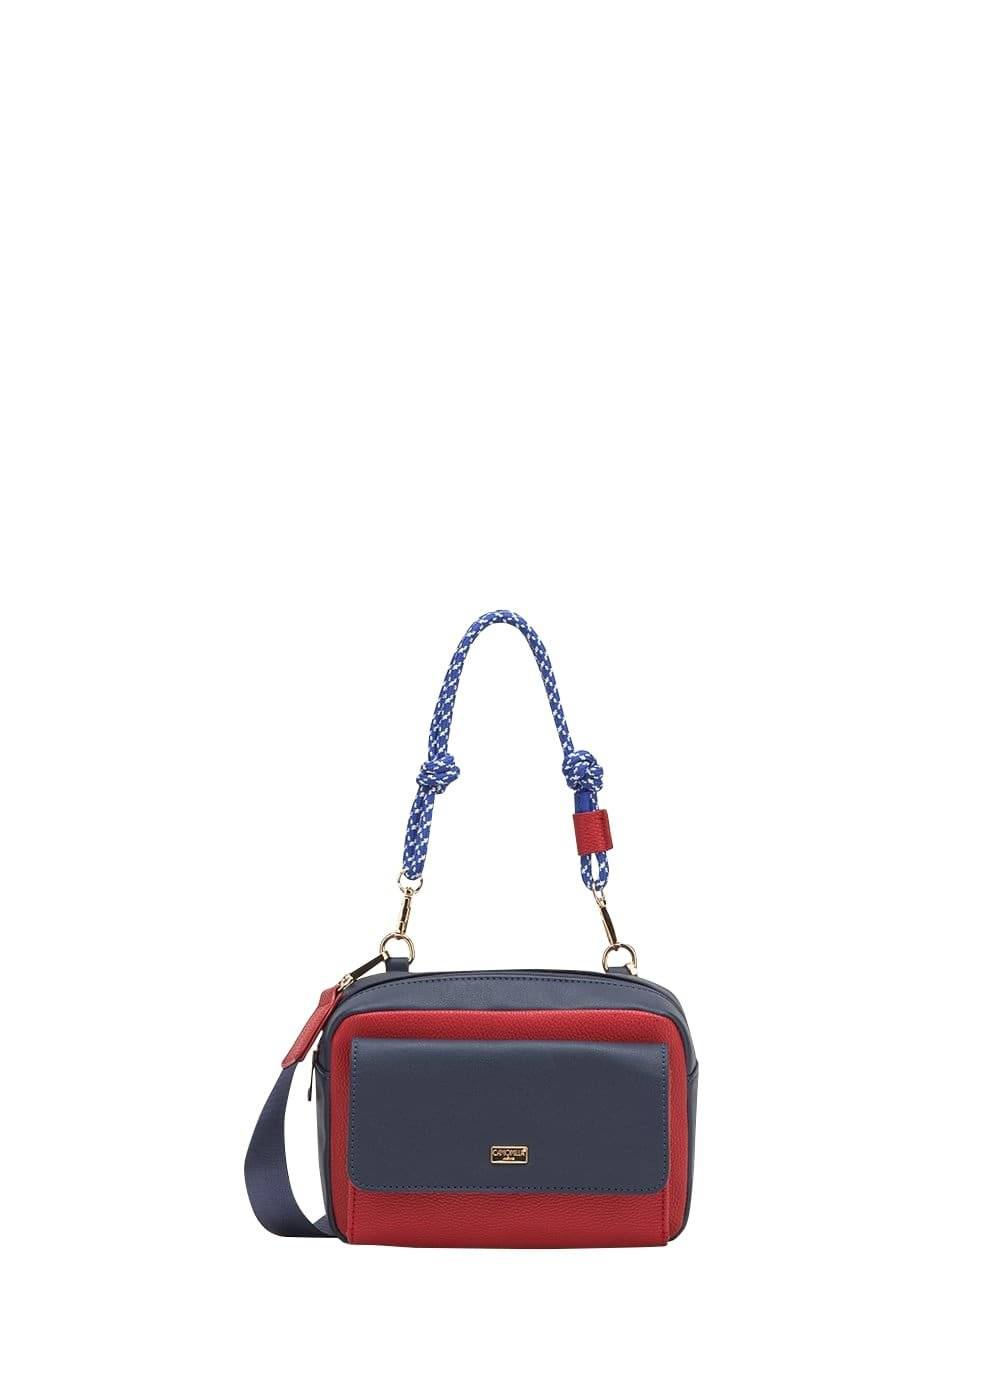 Bag Biwy con manico corda - Medium Blue / Passione - Donna